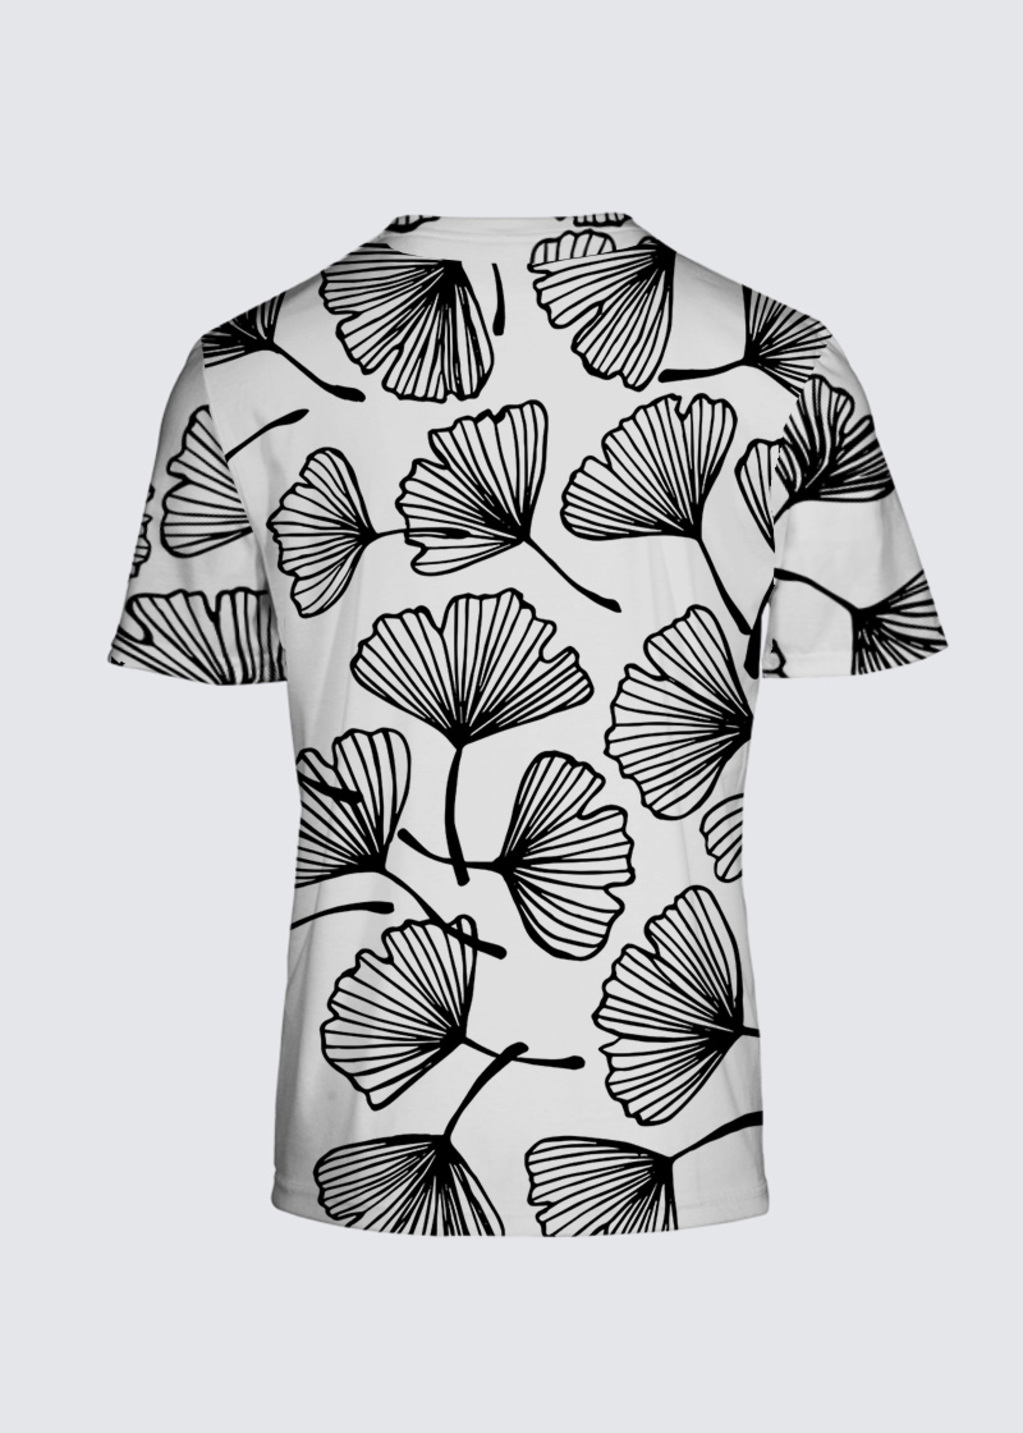 Picture of Ginko leaves silhouette Ginkgo Floral Japanese outline black and white ornament. Salvador Tee